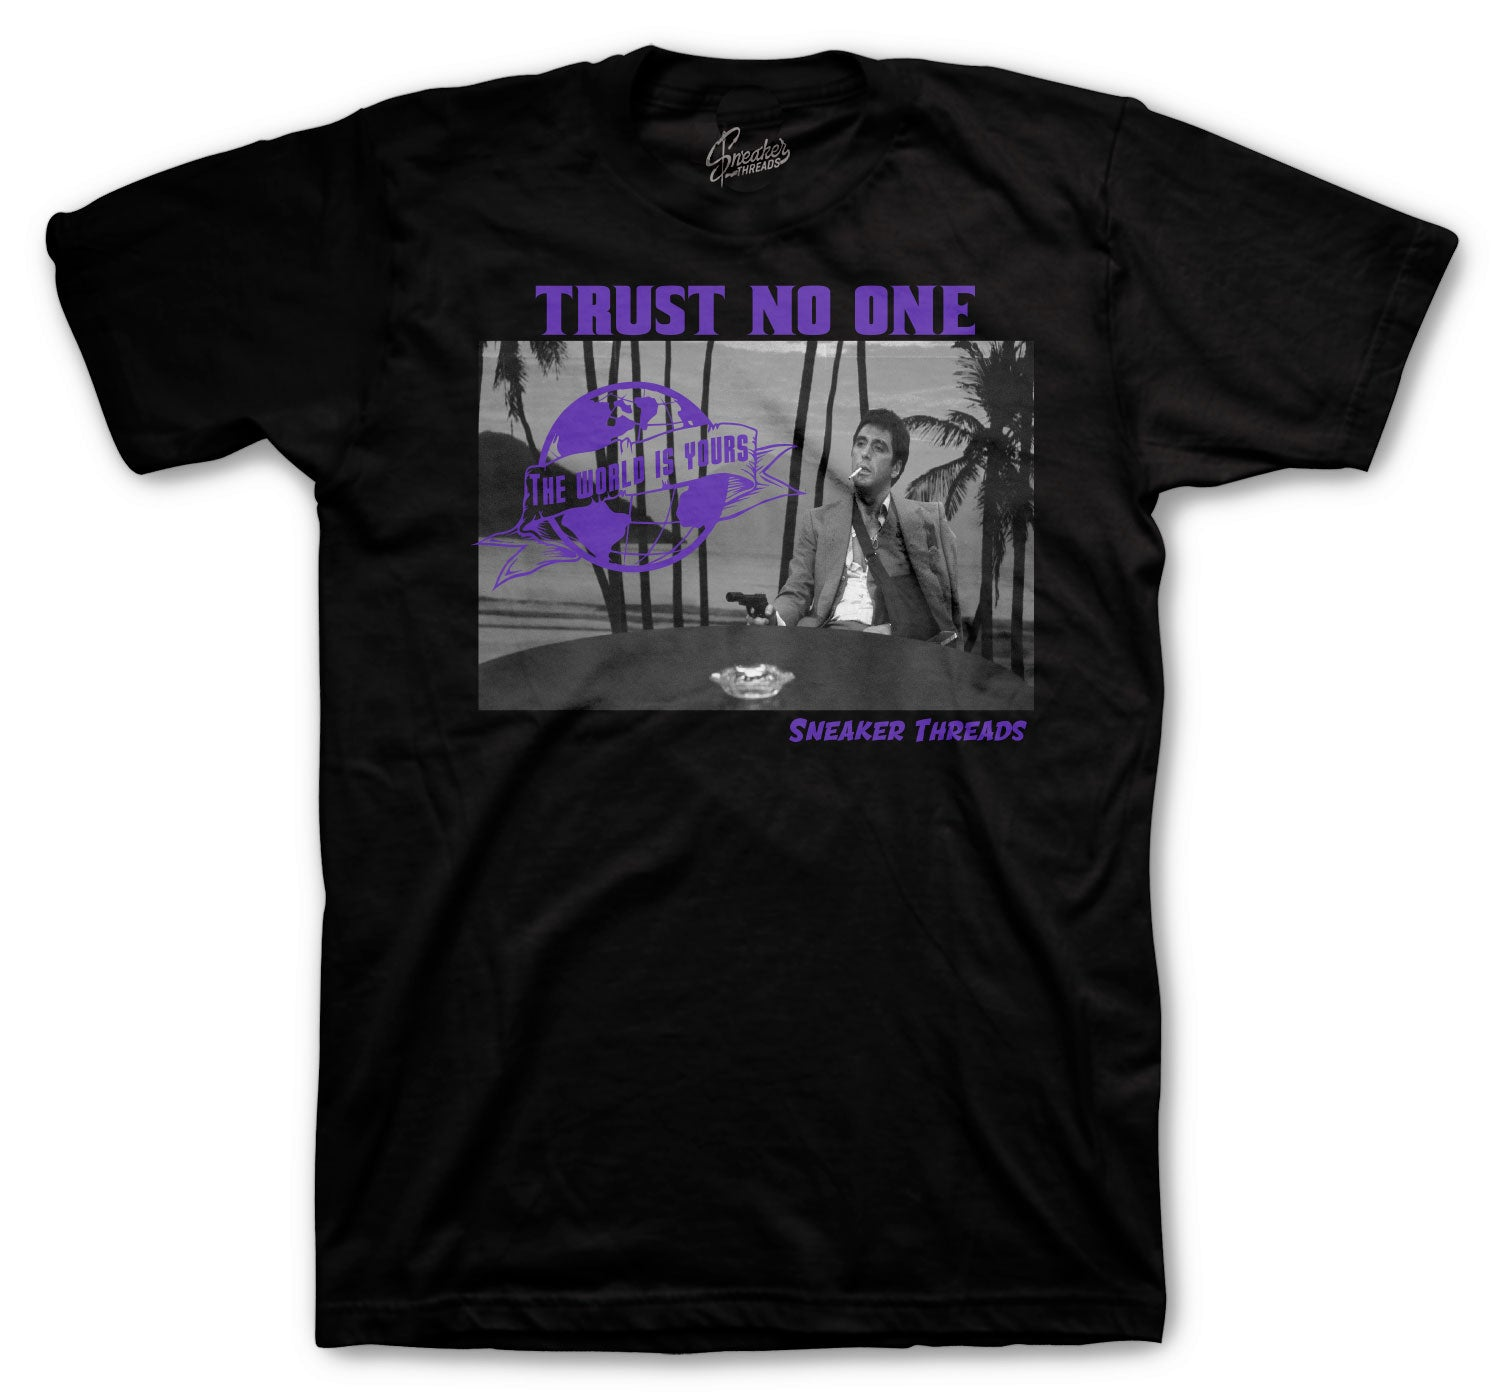 Jordan 12 Dark Concord Tony Knows Shirt